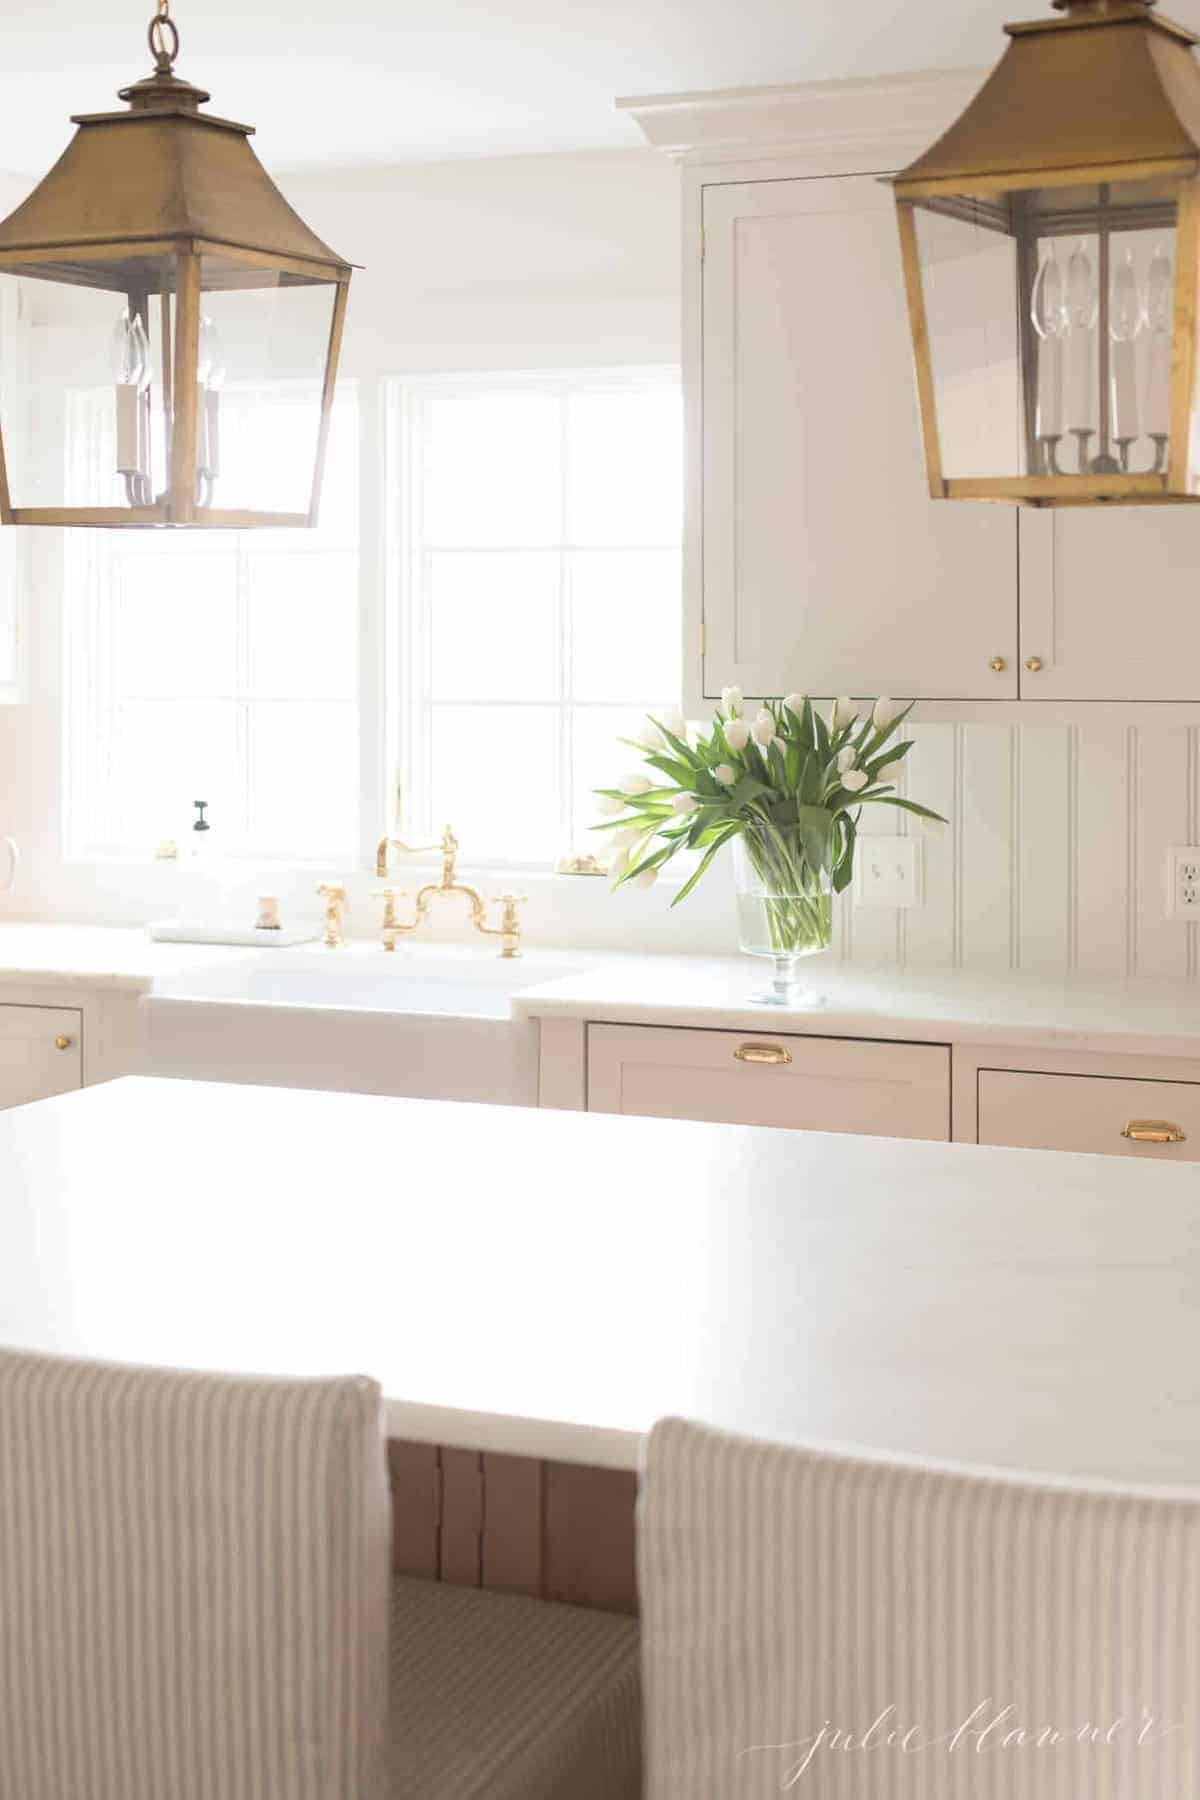 A white kitchen with a large white island, empty minimalist aesthetic with a single glass vase of tulips near sink.